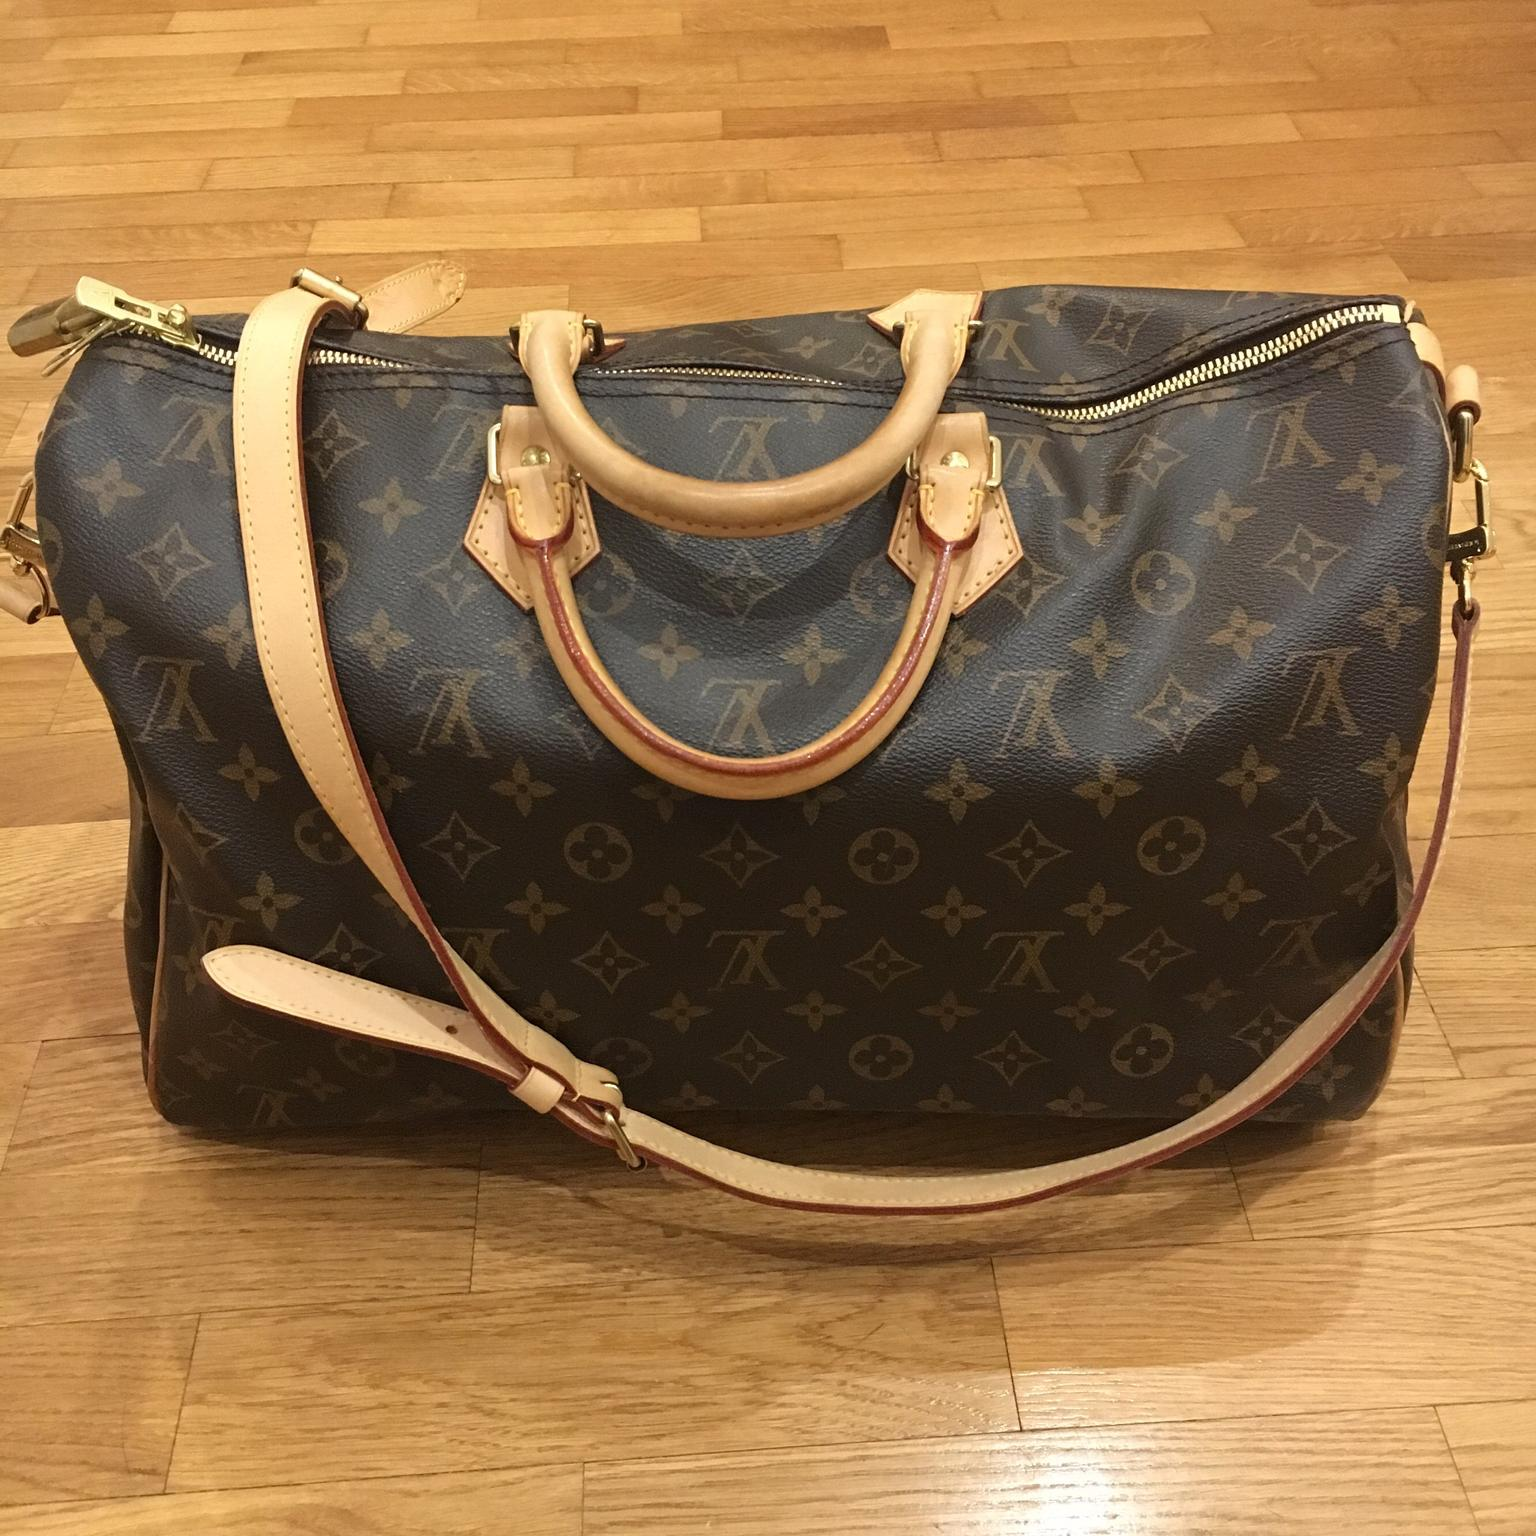 Bauletto Louis Vuitton Speedy Bandouliere 40 in 20149 Milano for €800 for  sale - Shpock e87b7eae68f7